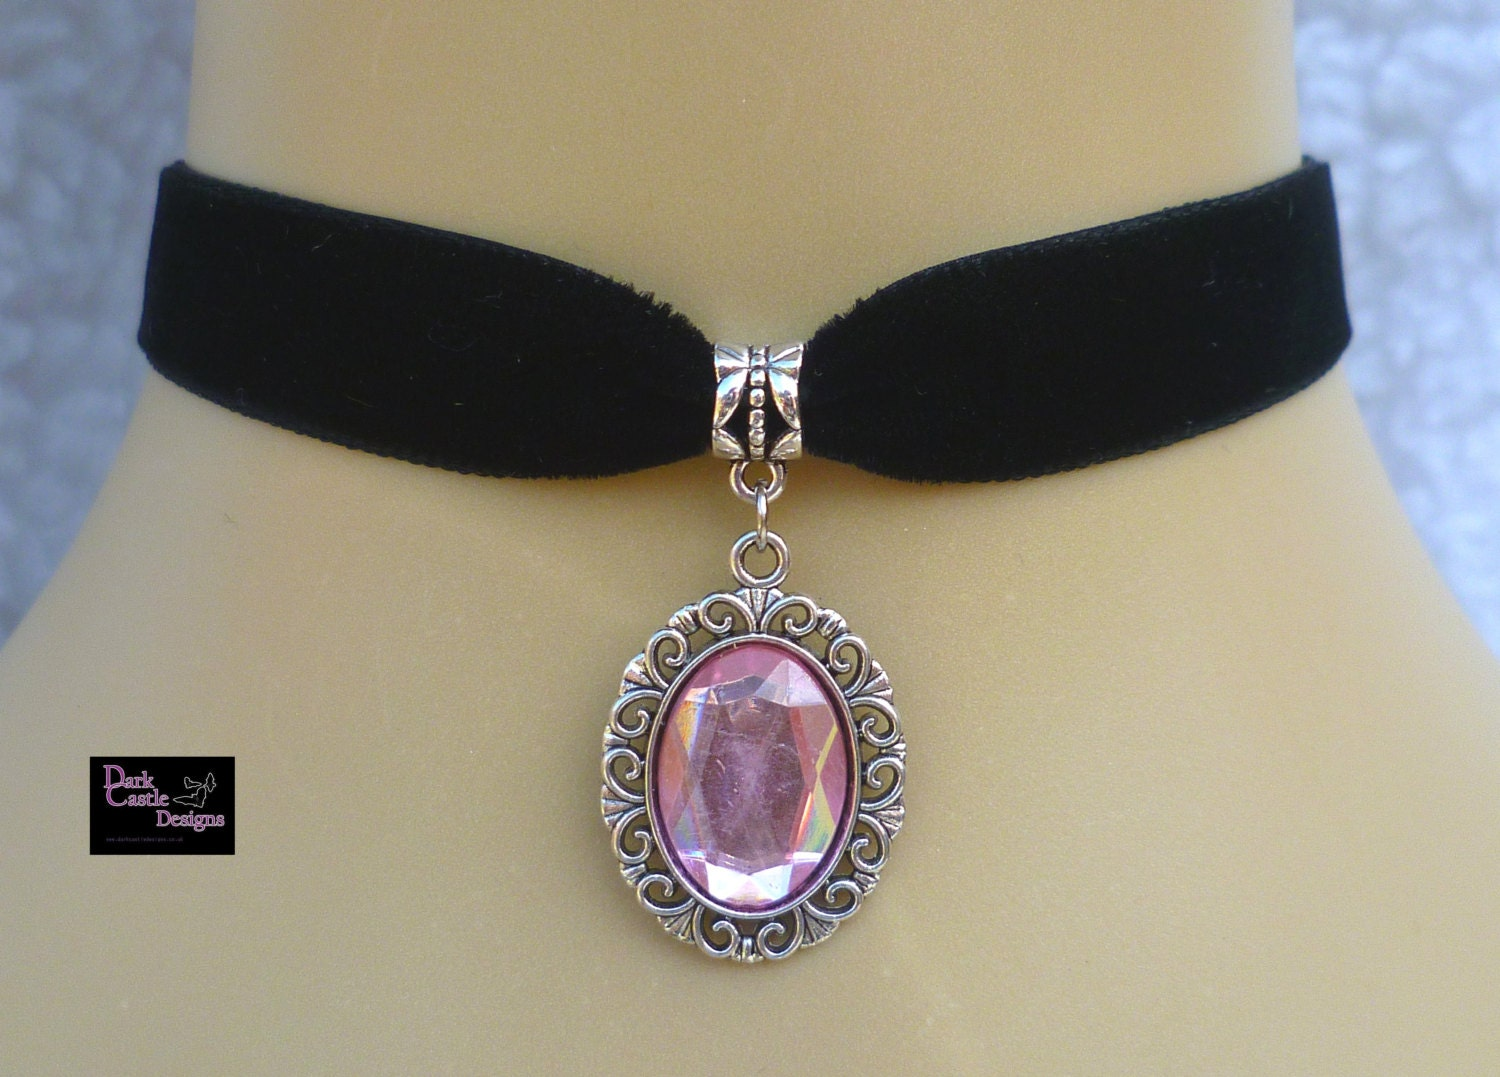 Black Velvet Choker/ Necklace with Baby Pink Acrylic Jewel Pendant Wicca Pagan gothic Steampunk Loloita steampunk buy now online